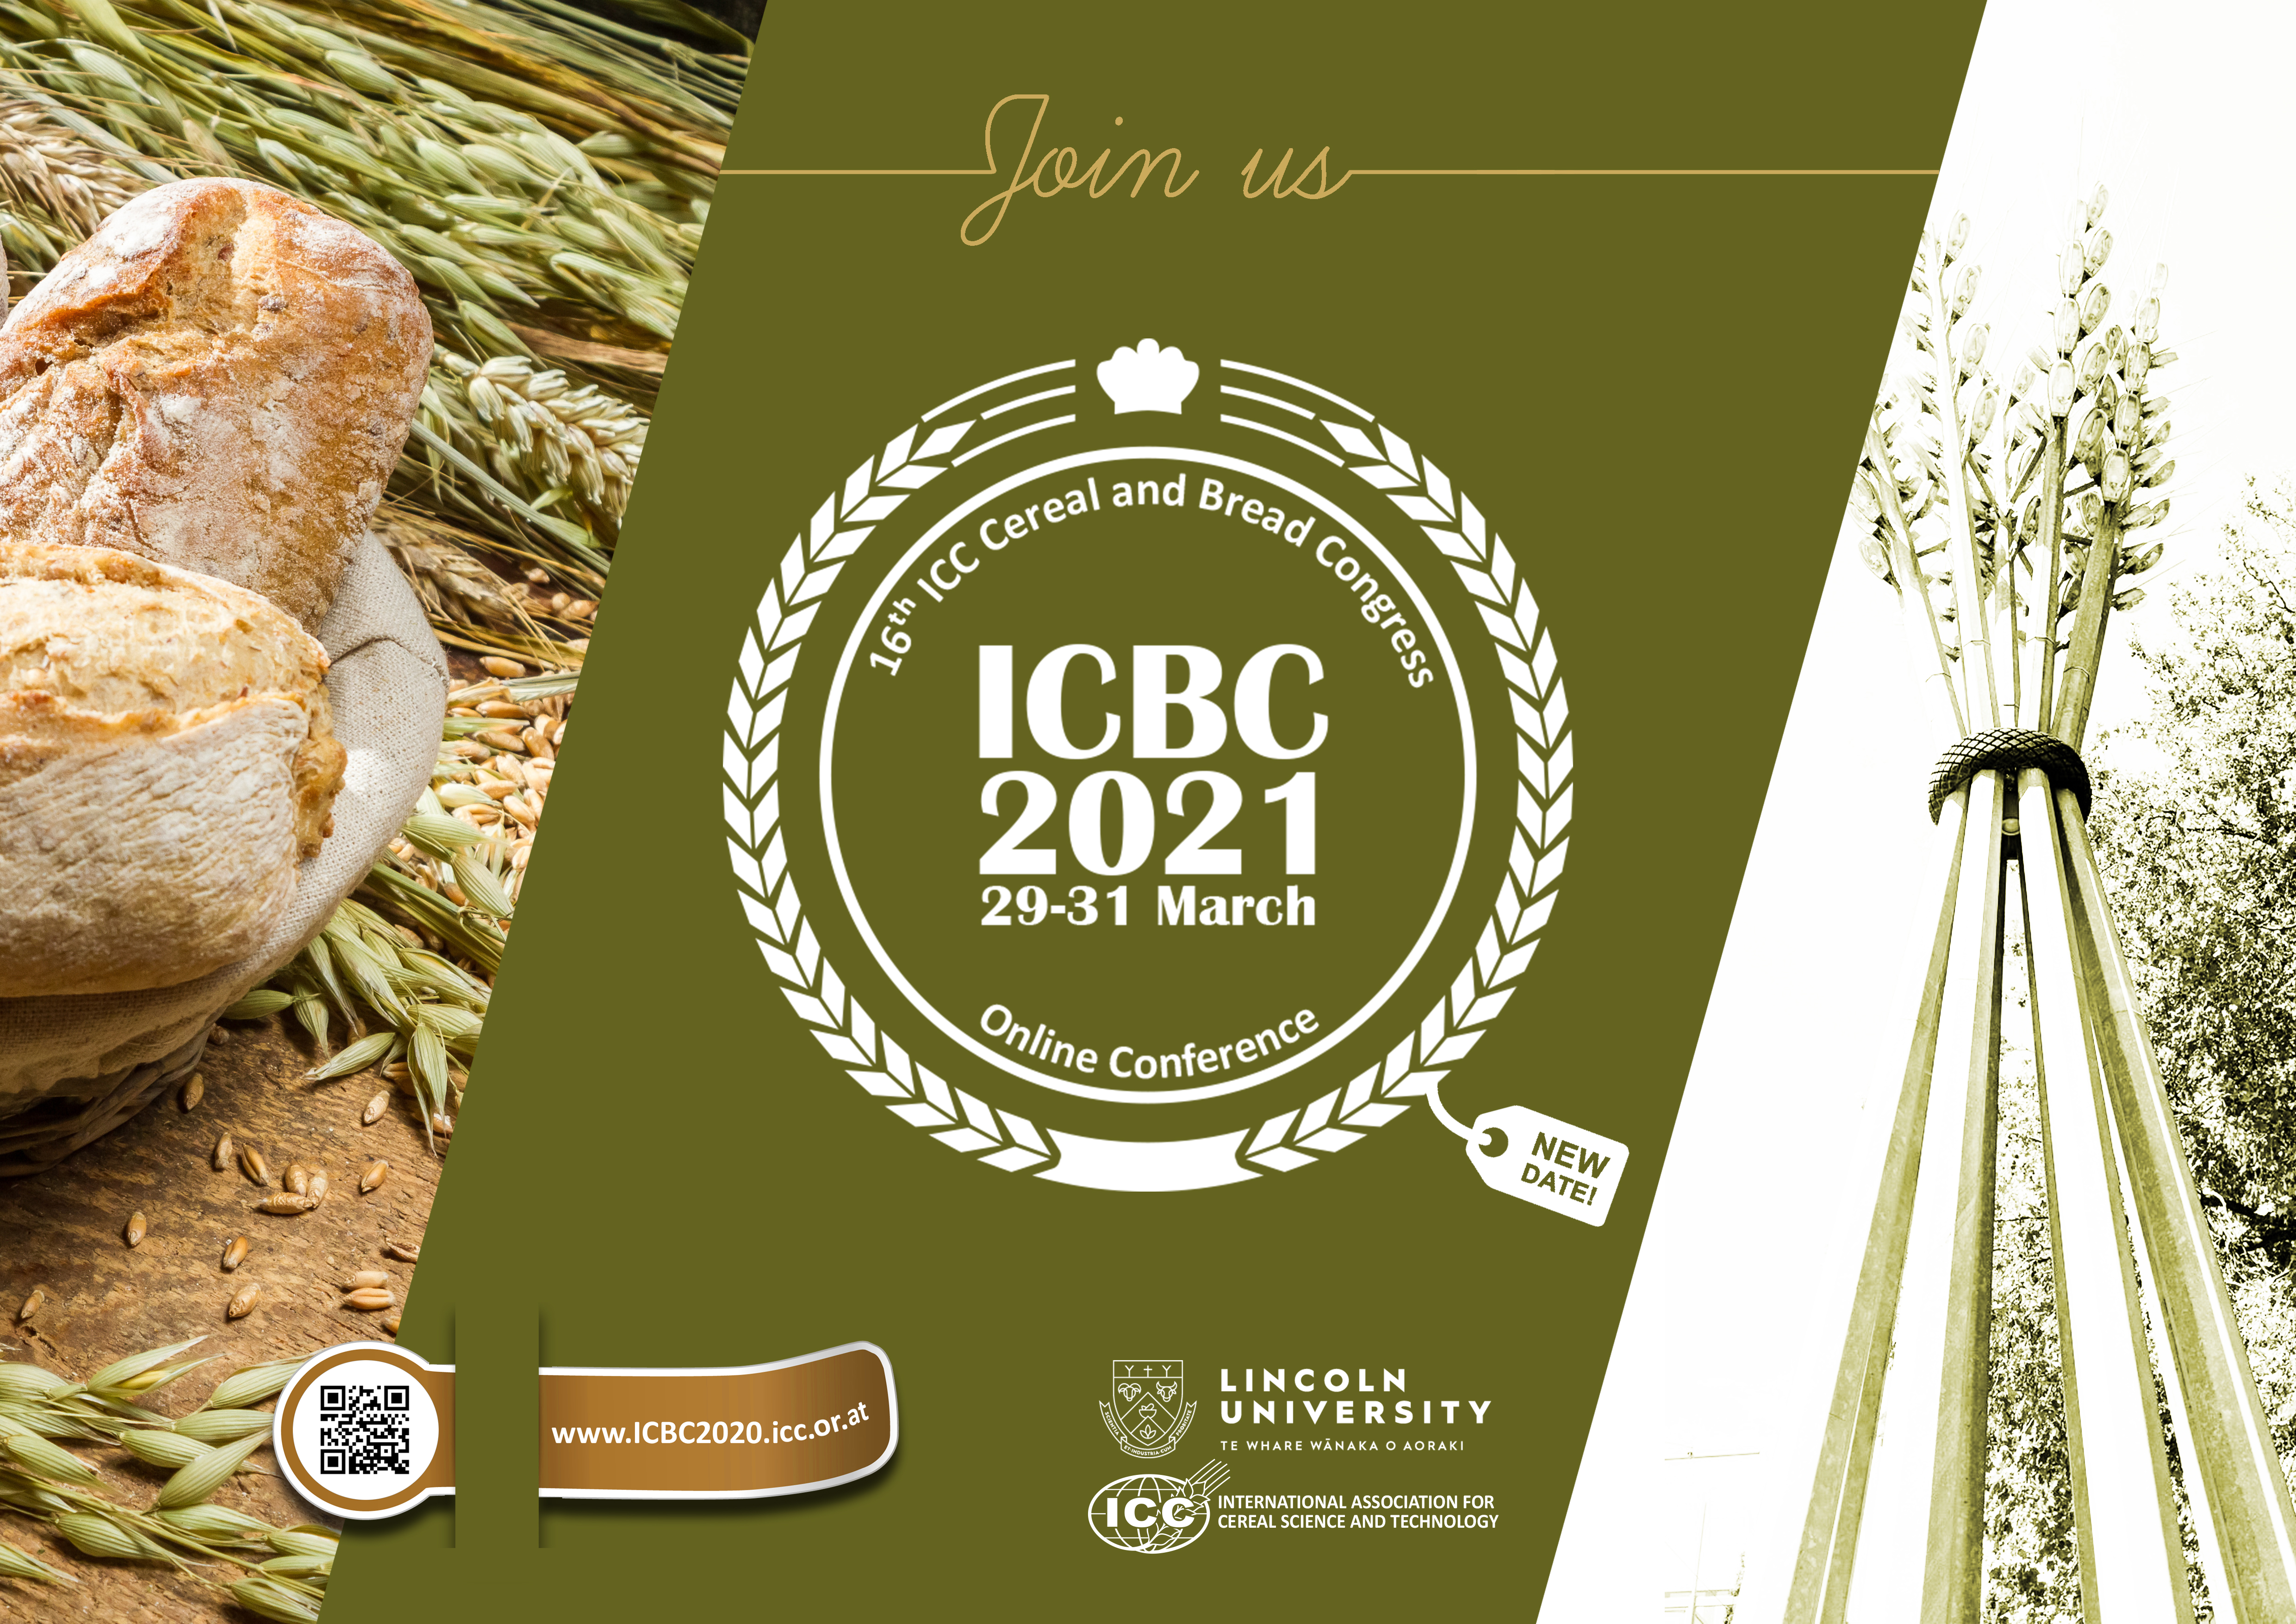 ICBC2021 - Submit your poster abstract and register!